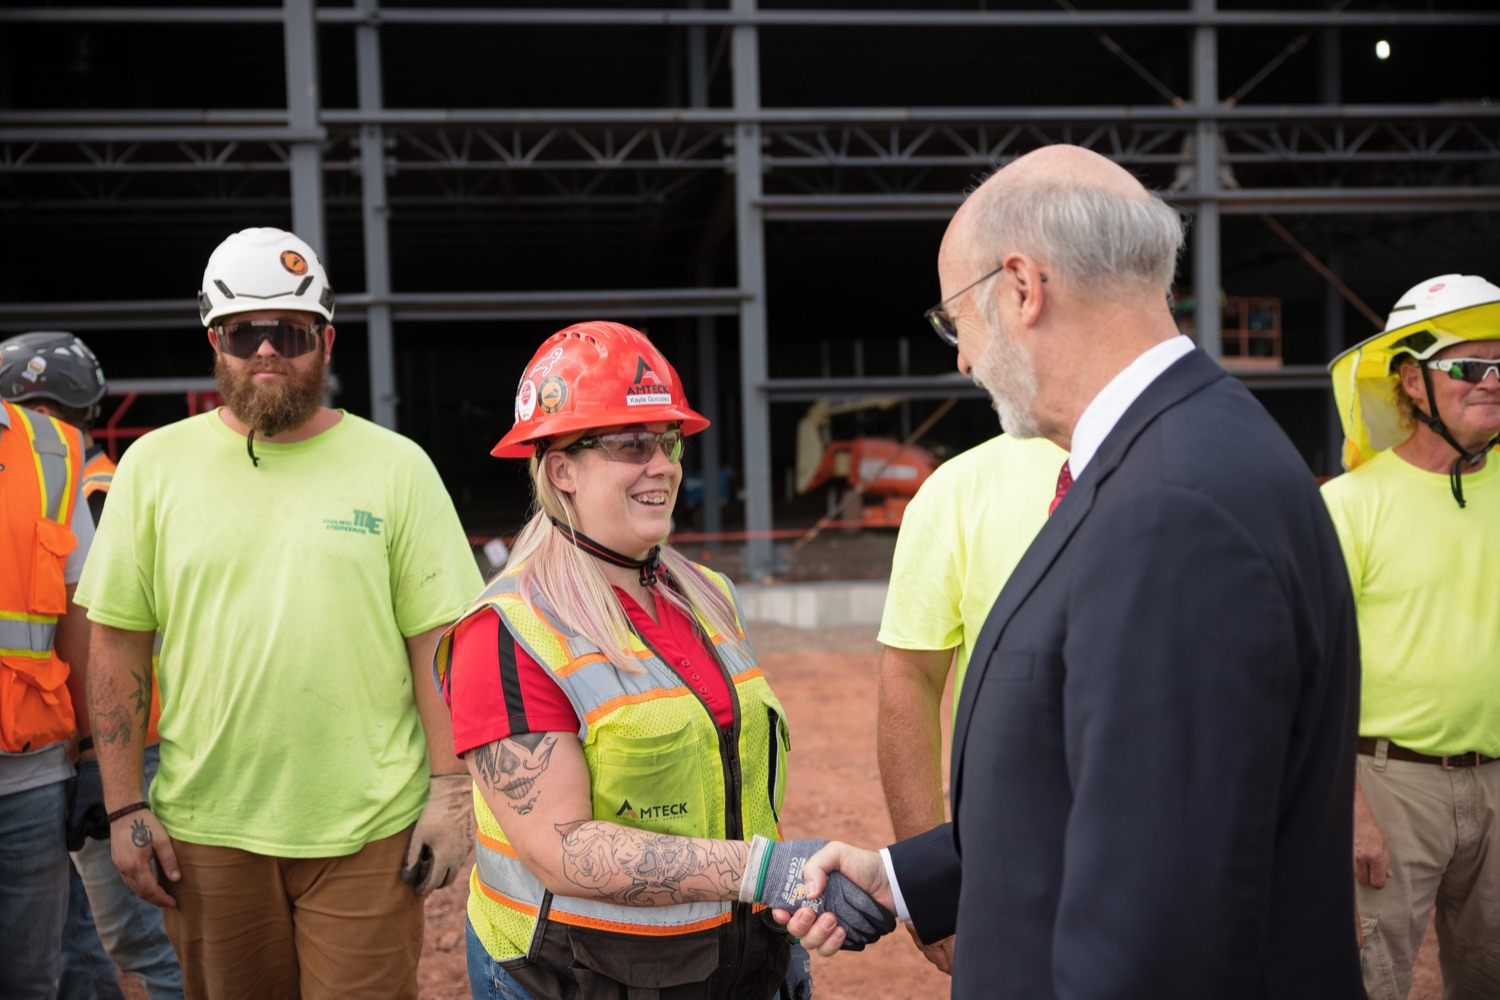 """<a href=""""https://filesource.wostreaming.net/commonwealthofpa/photo/20126_gov_economicDevelopment_dz_014.jpg"""" target=""""_blank"""">⇣Download Photo<br></a>Pennsylvania Governor Tom Wolf greeting construction workers as he tours the site.  Governor Tom Wolf joined Clemens Food Group leaders, Agriculture Secretary Russell Redding, Sen. Maria Collett, Rep. Steve Malagari and members of the Governors Action Team today to tour the construction of the companys new facility in Montgomery County. The Wolf Administration supported the project which will expand the business operations and create new jobs in the region. Hatfield, PA   October 8, 2021"""